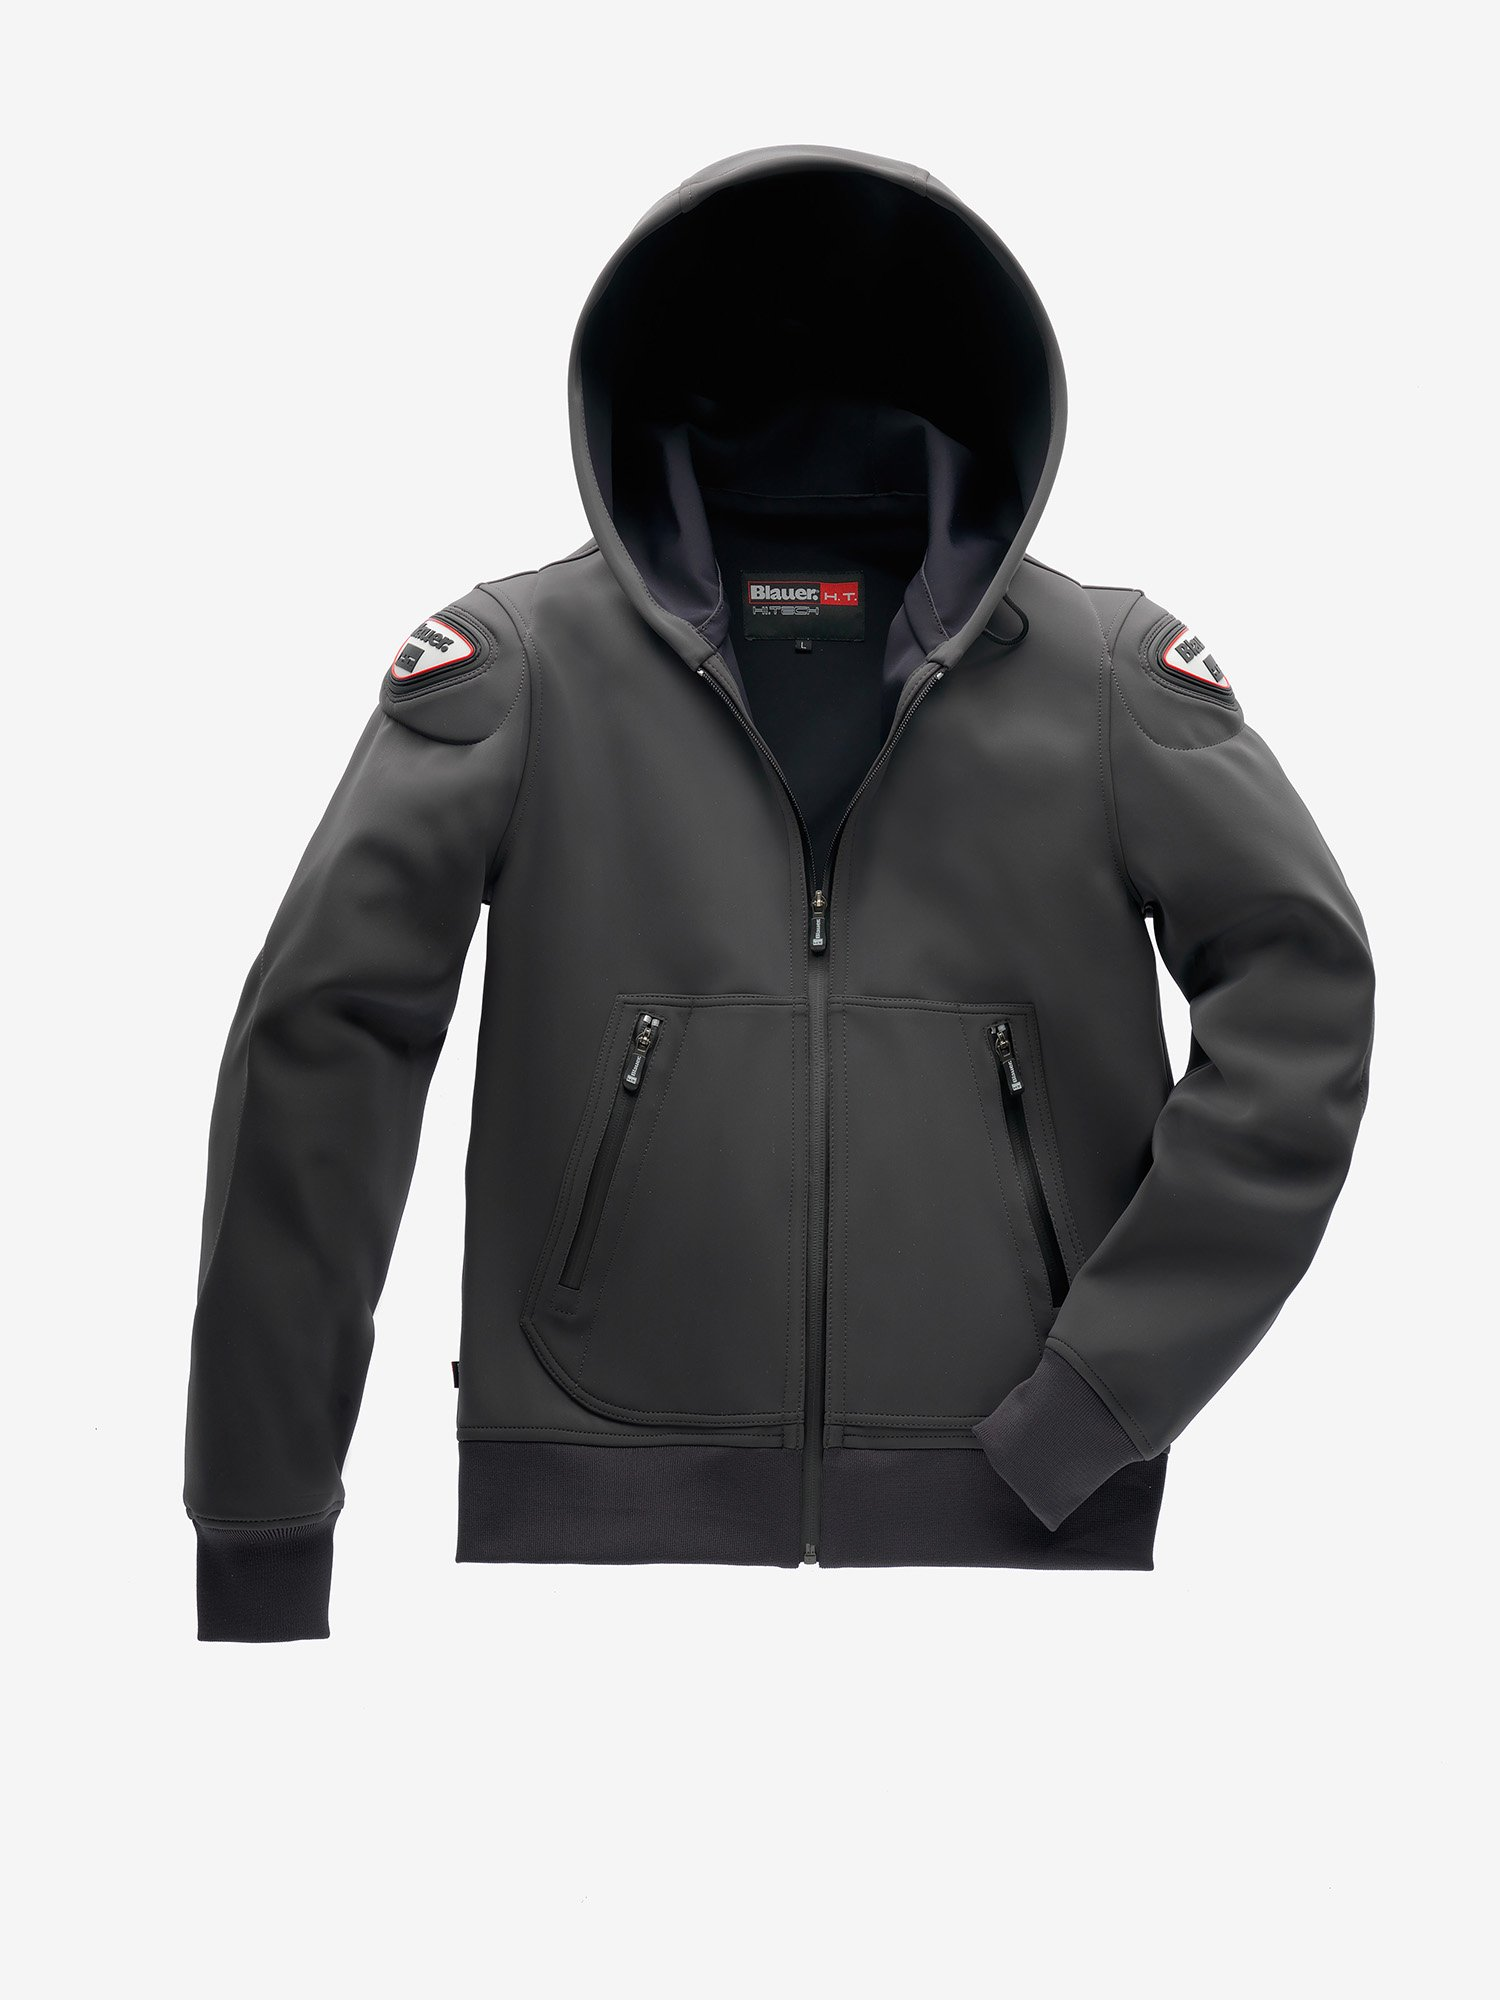 EASY MAN 1.1 ANTHRACITE - Blauer